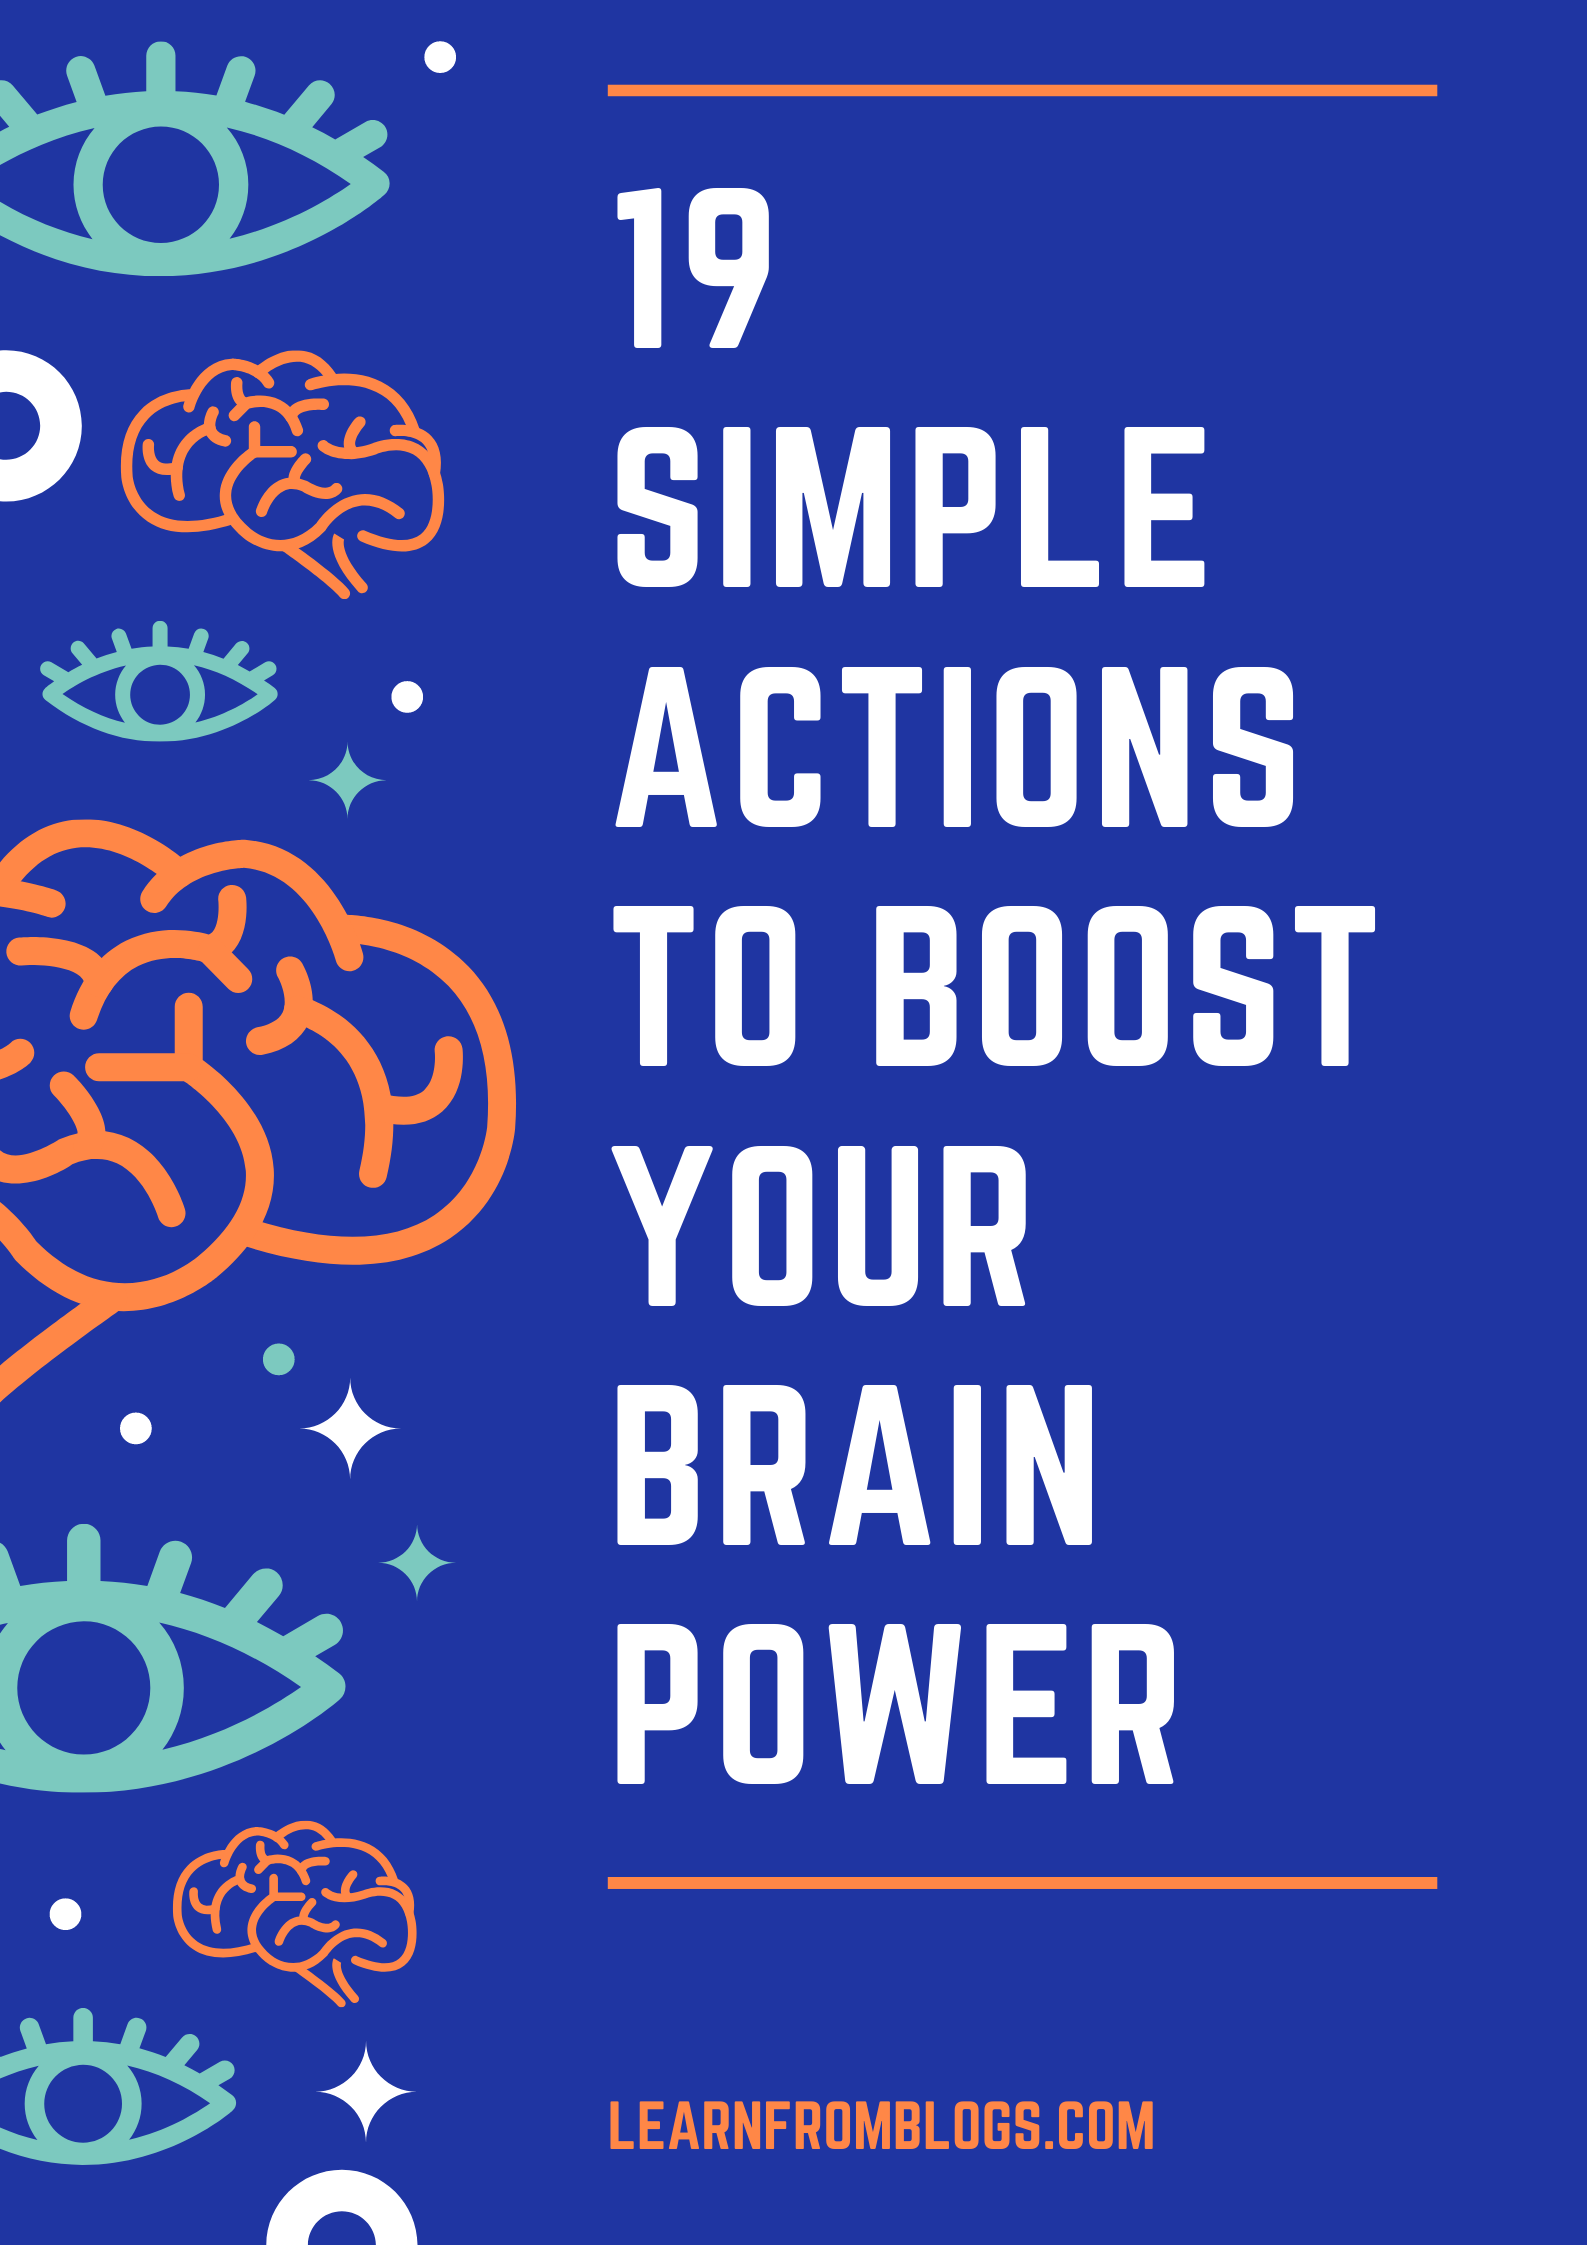 19 Simple Actions To Boost Your Brain Power.png